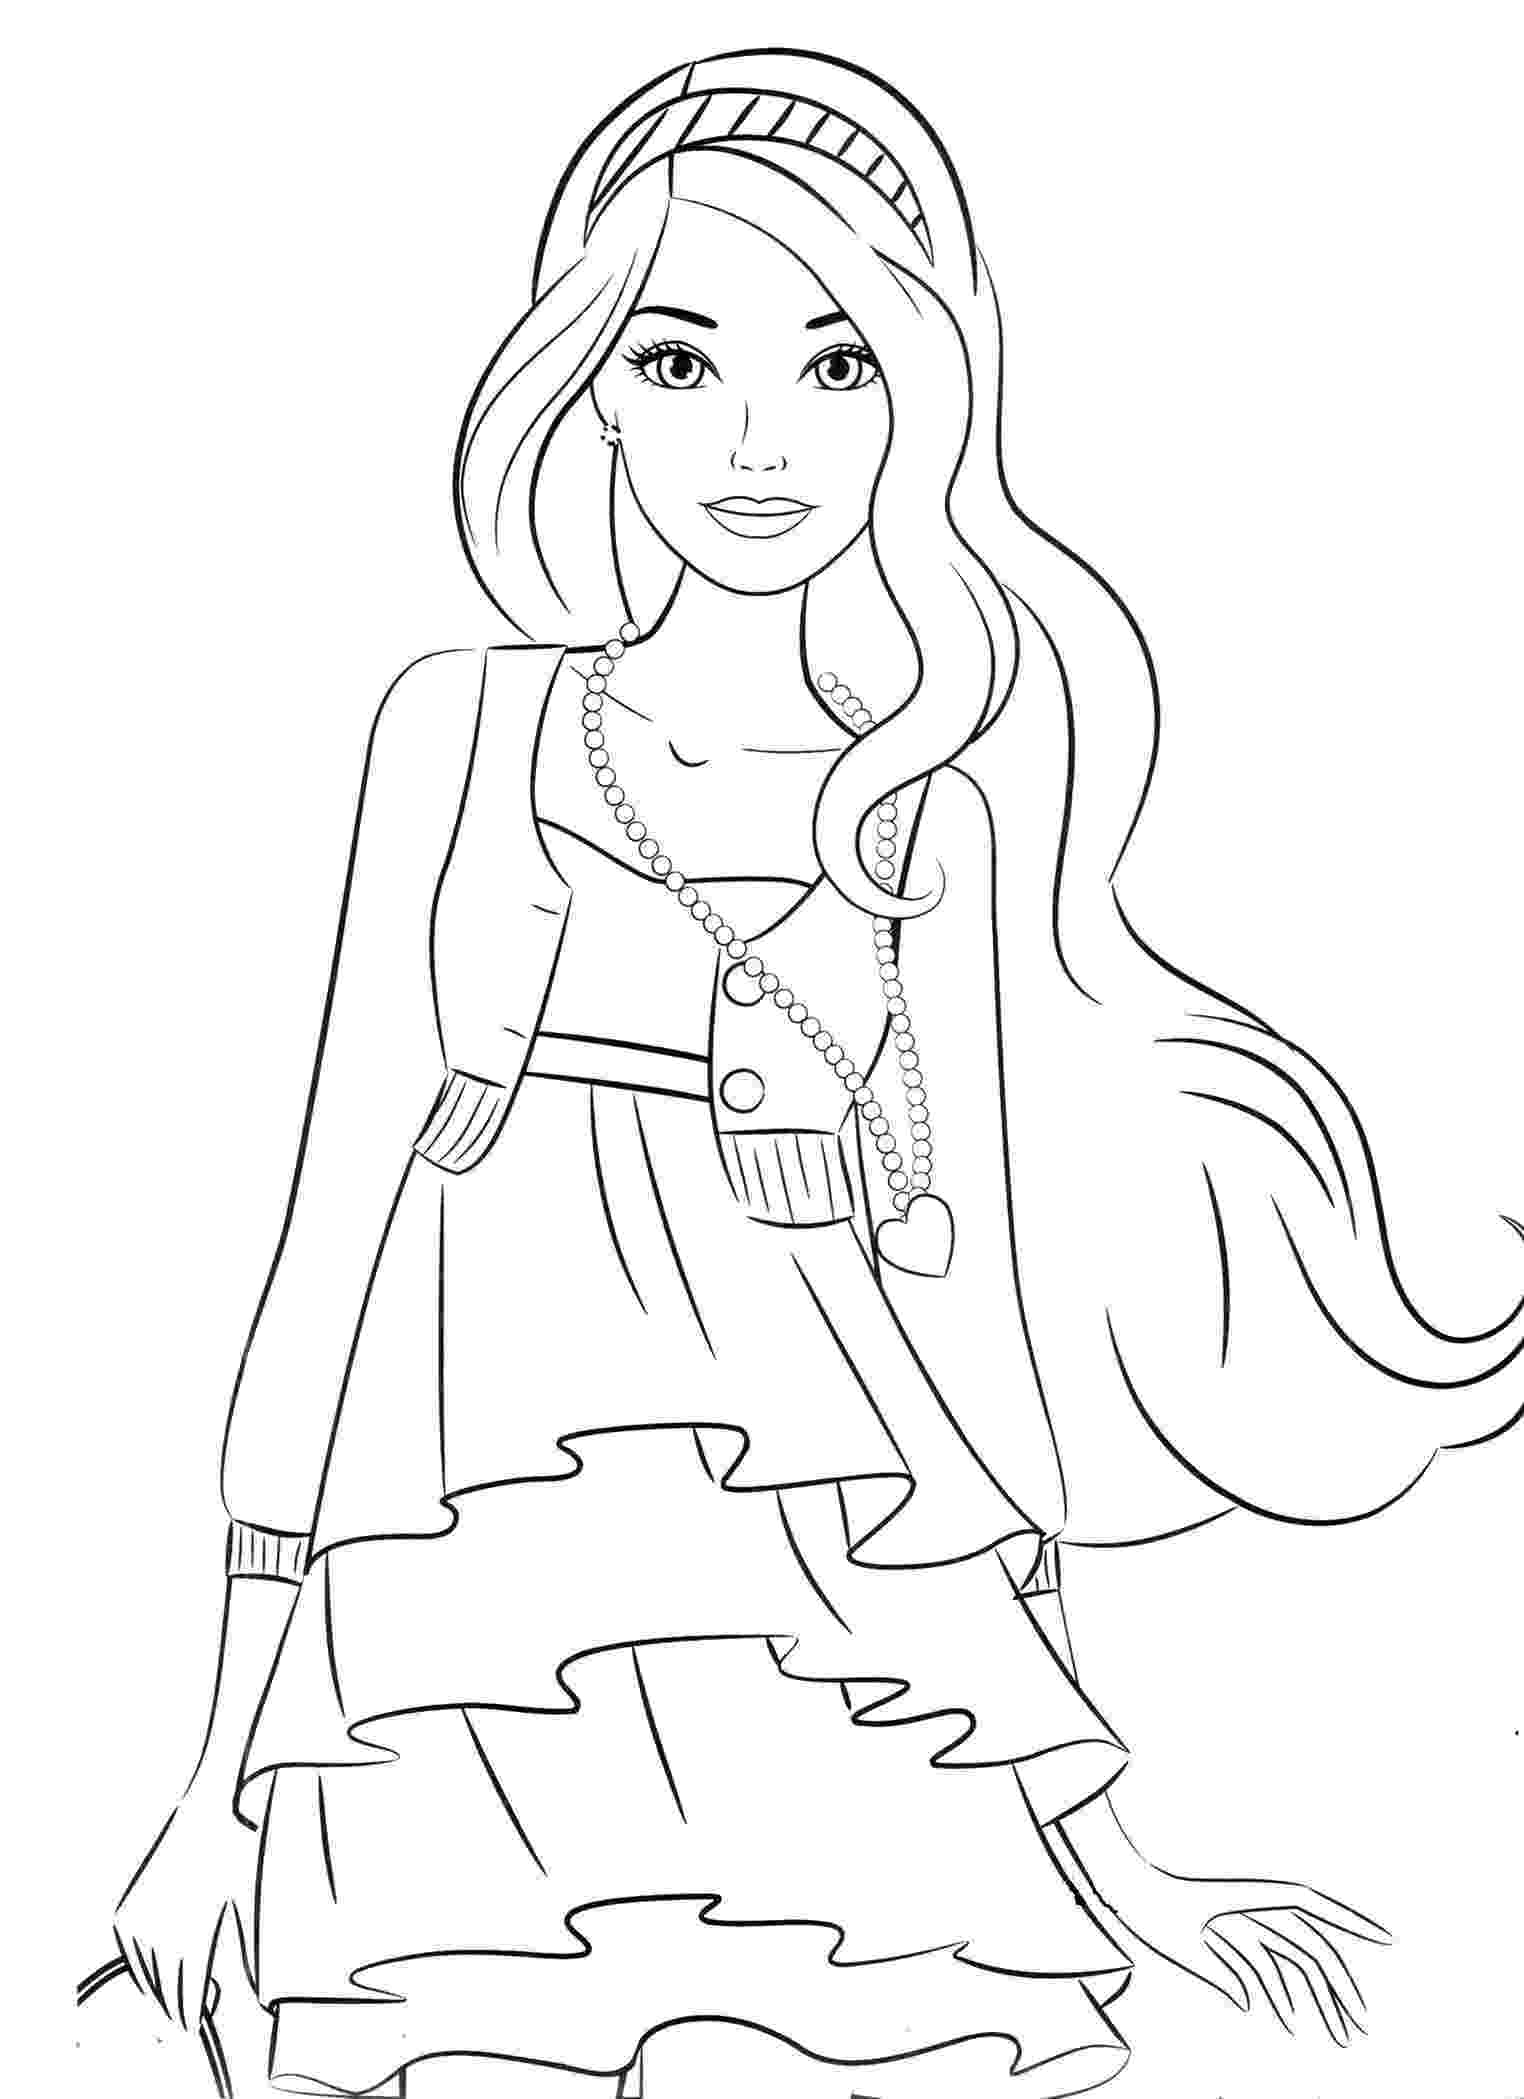 girl colering pages equestria girls coloring pages best coloring pages for kids pages colering girl